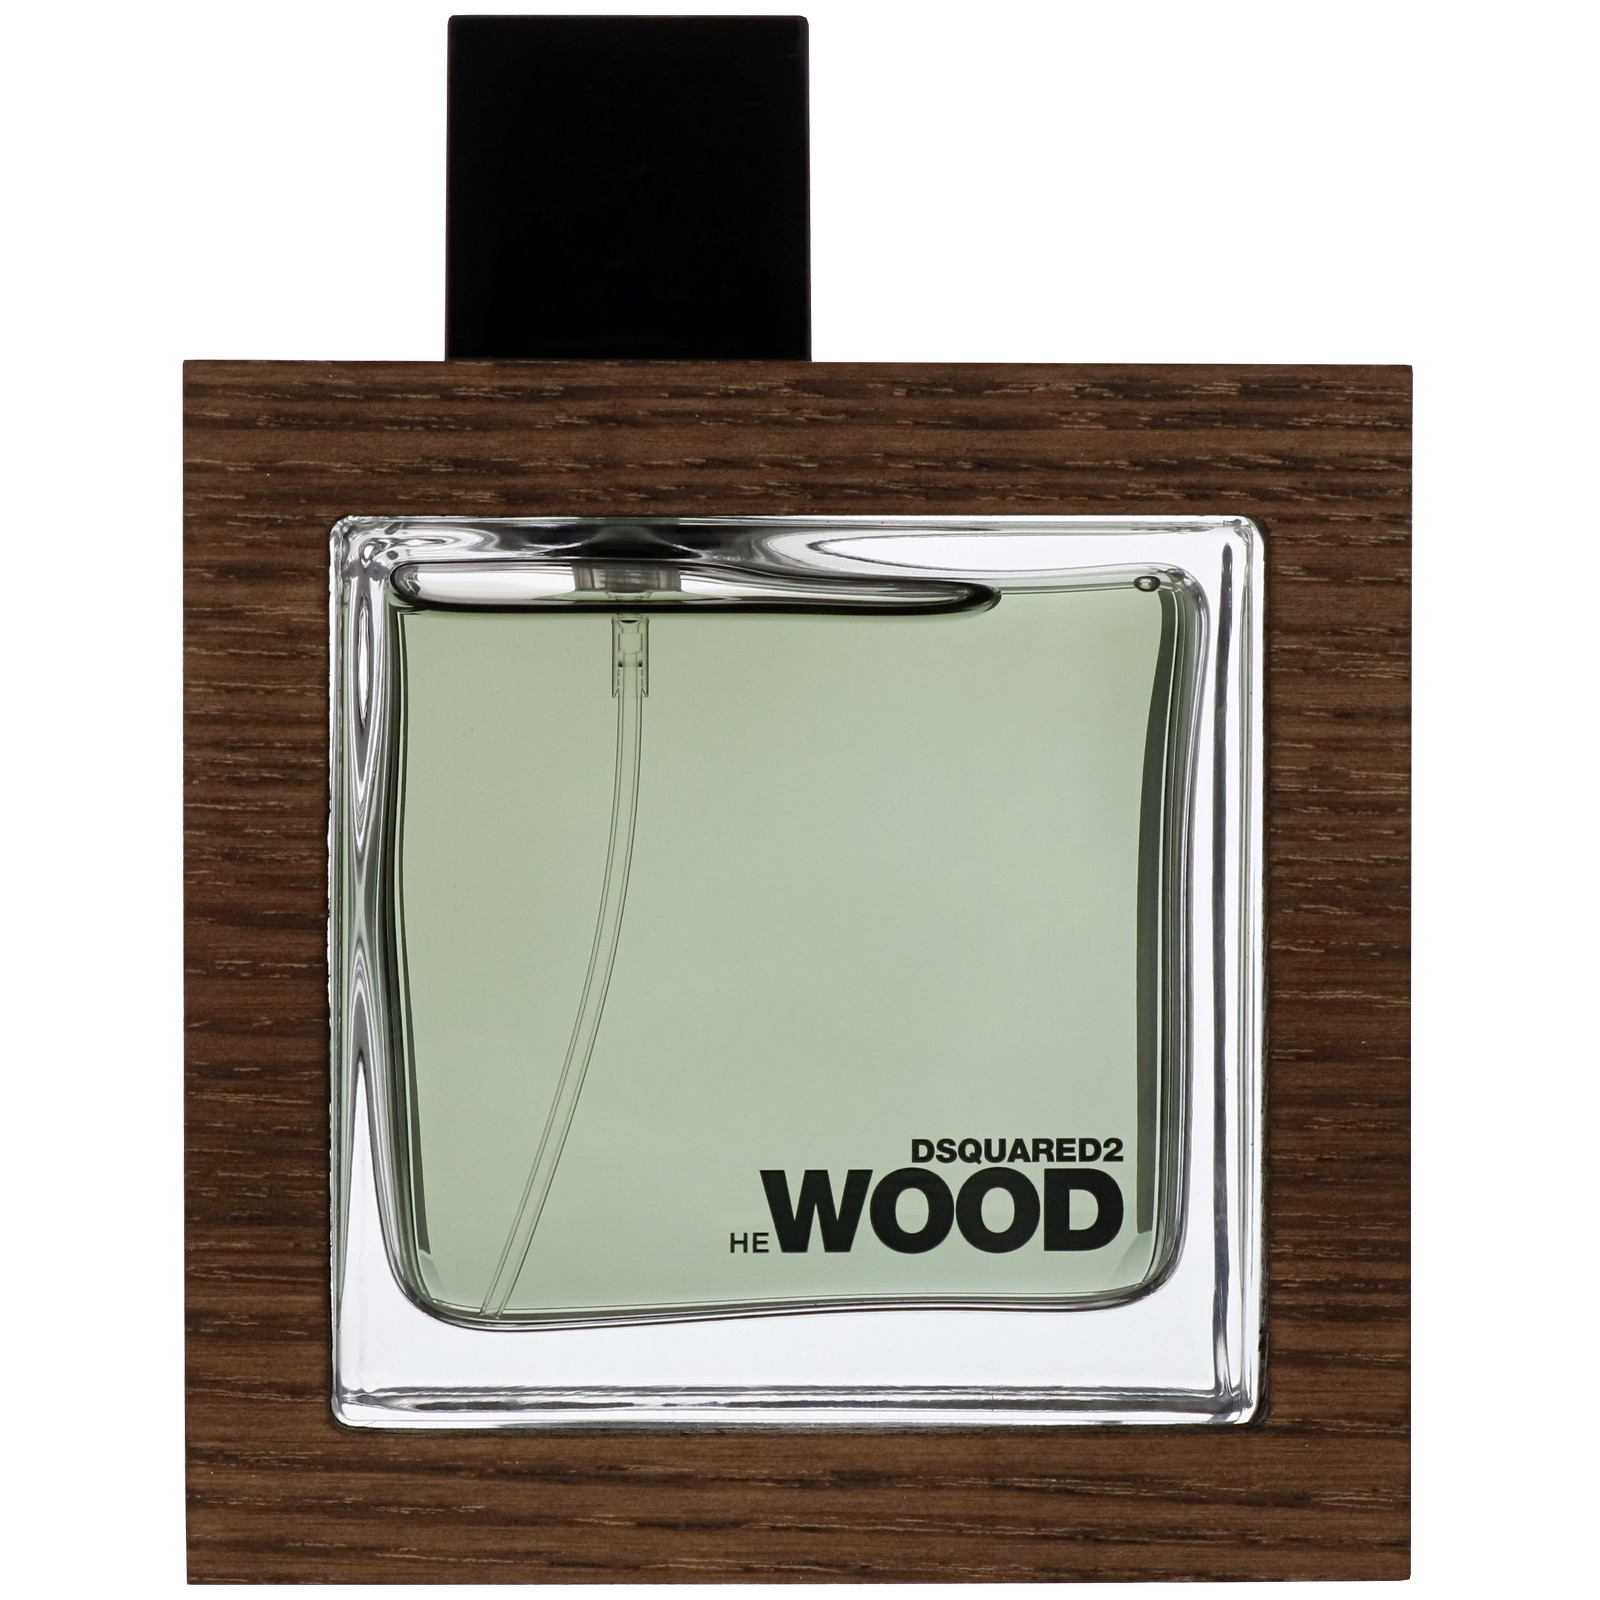 5cc6afa4cec Dsquared2 He Wood Rocky Mountain Wood Eau de Toilette Spray 50ml -  Aftershave